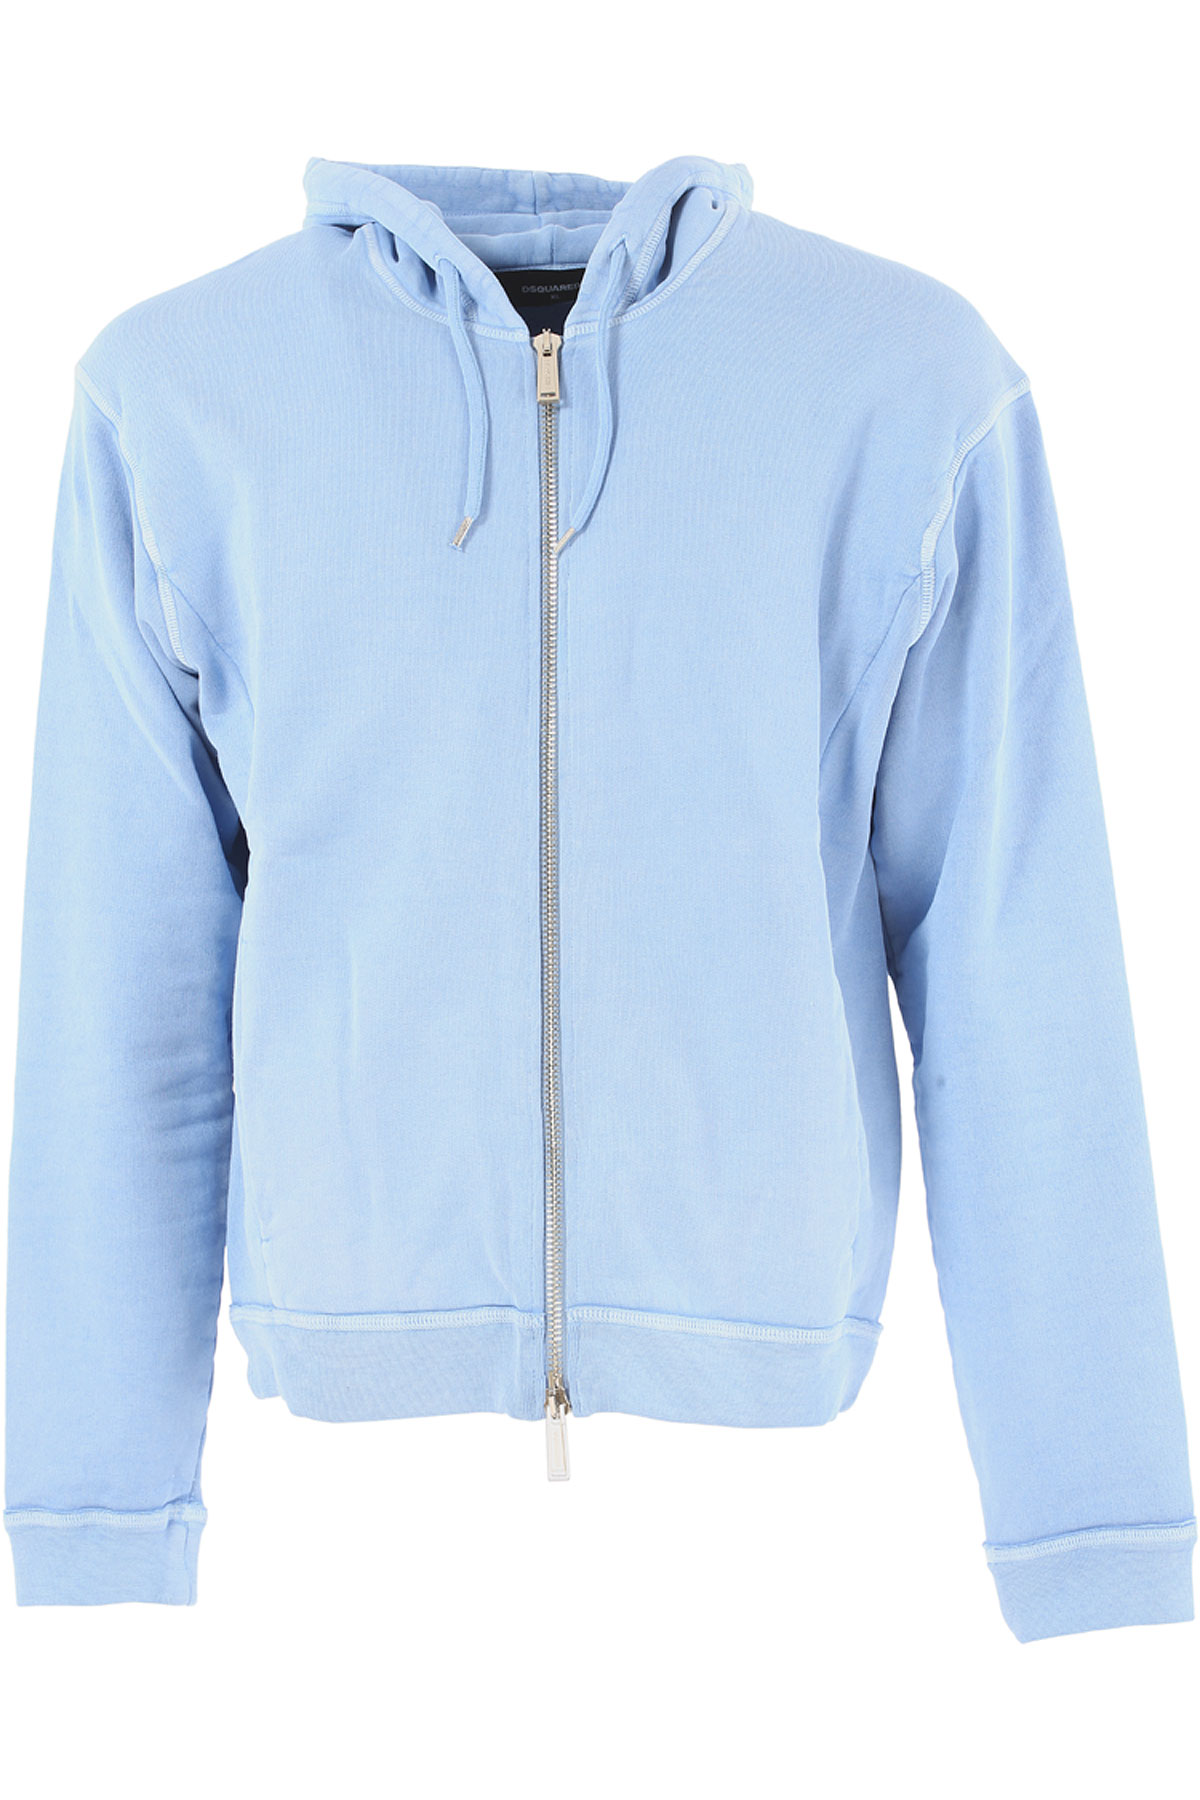 Dsquared2 Sweatshirt for Men On Sale in Outlet, Skyblue, Cotton, 2017, M XL USA-384954